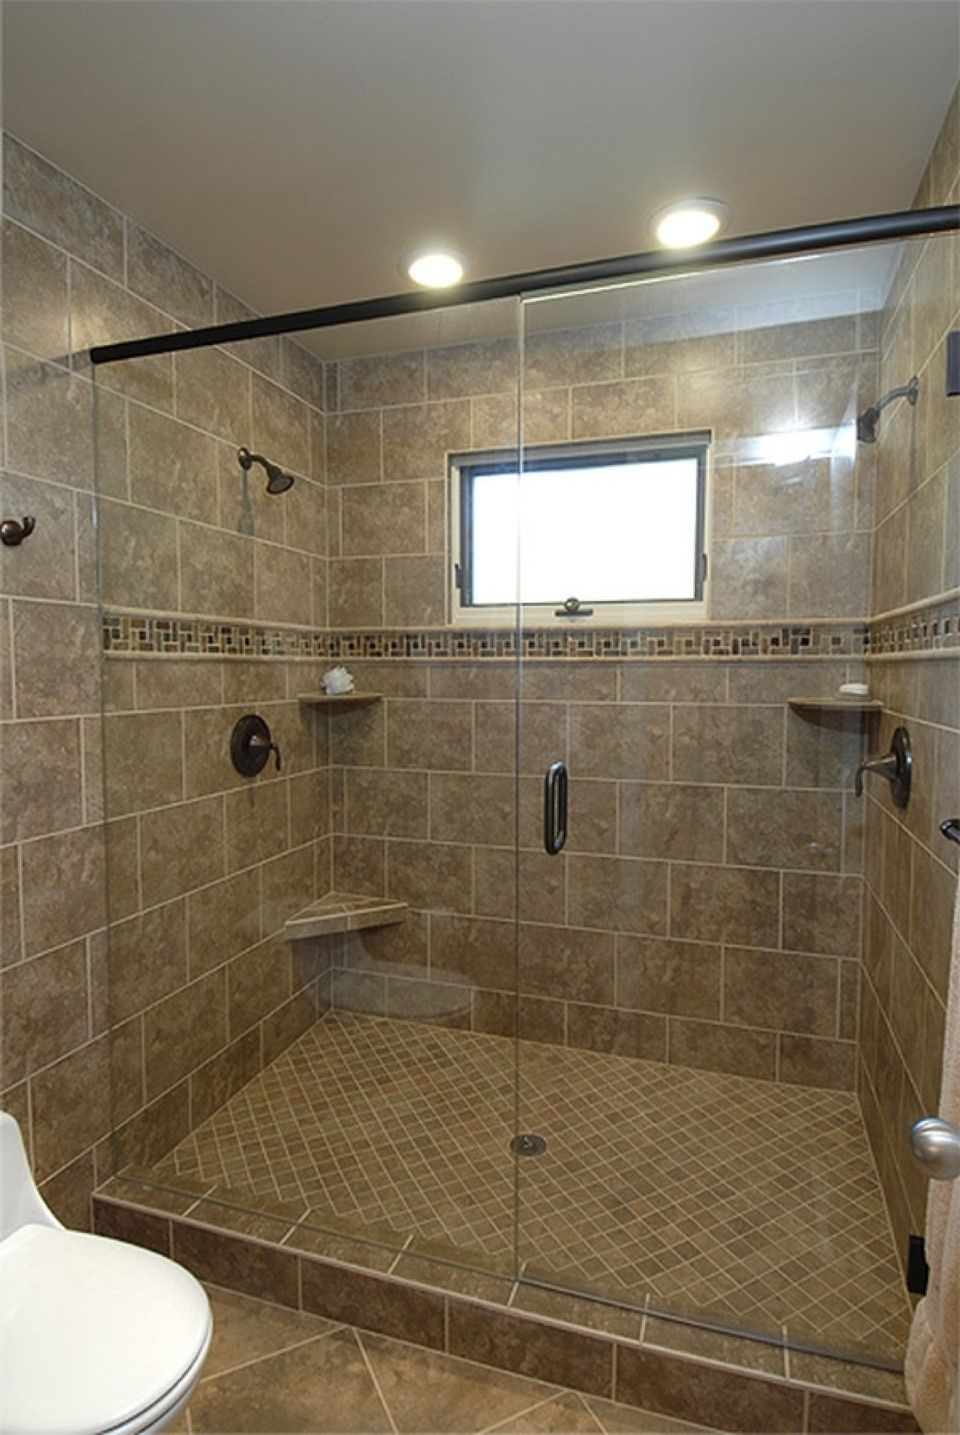 Shower with window ideas  showers with bullnose around window  google search  ideas for the